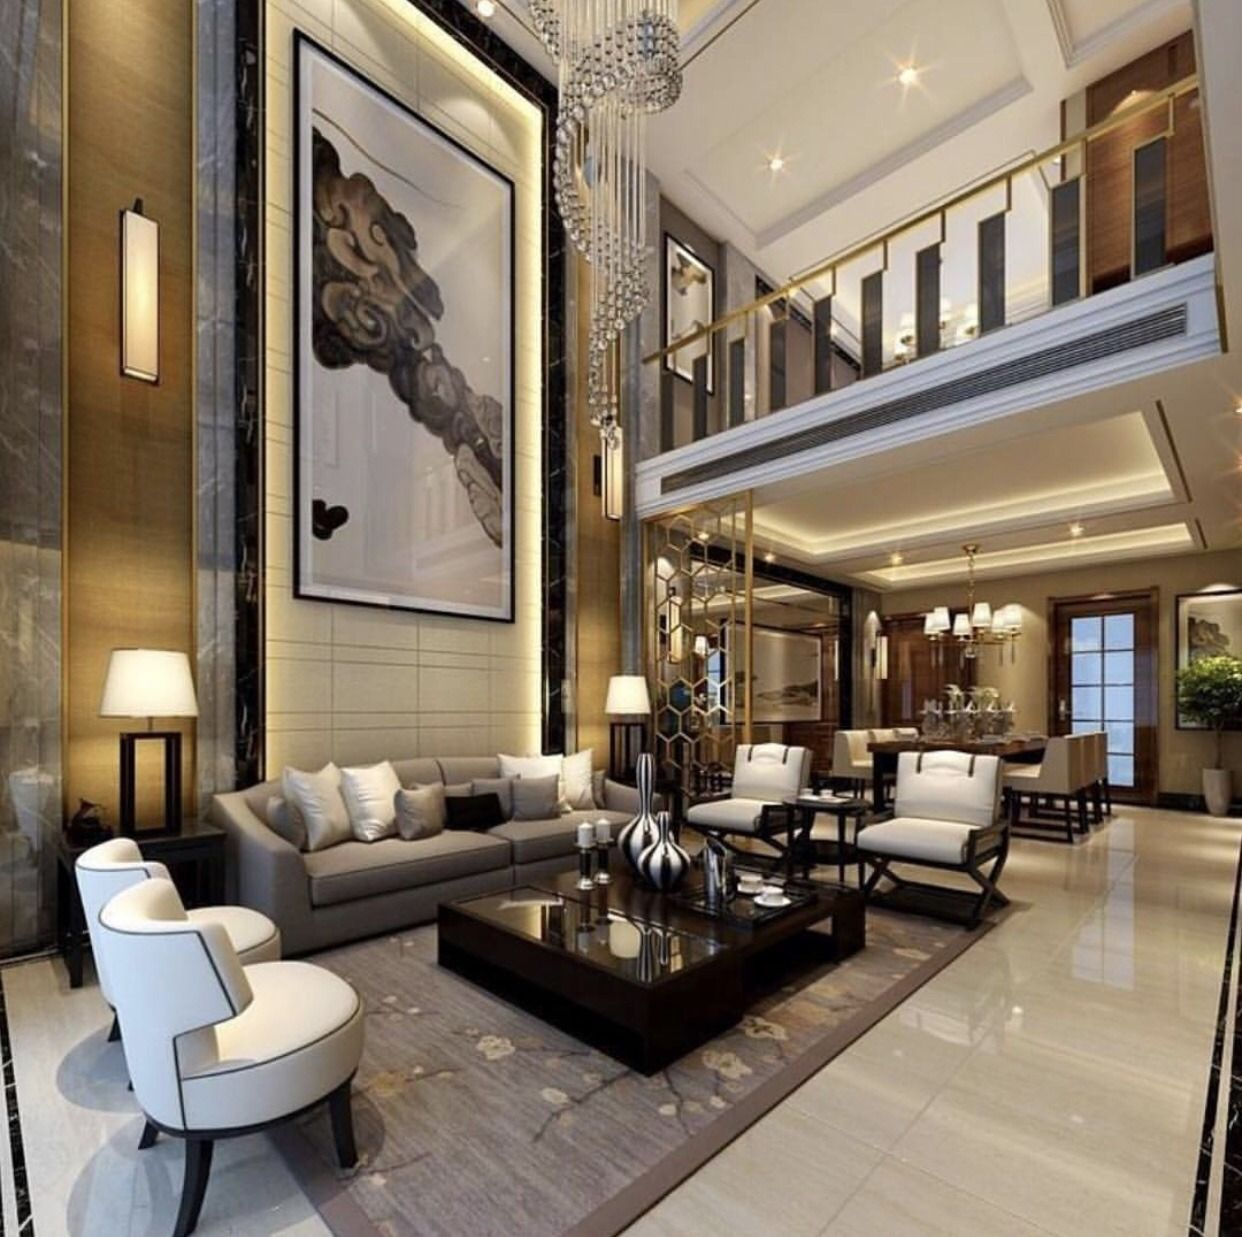 New Home Designs Latest Luxury Living Rooms Interior: Pin By BELINDA Darmawan On Home Sweet Home